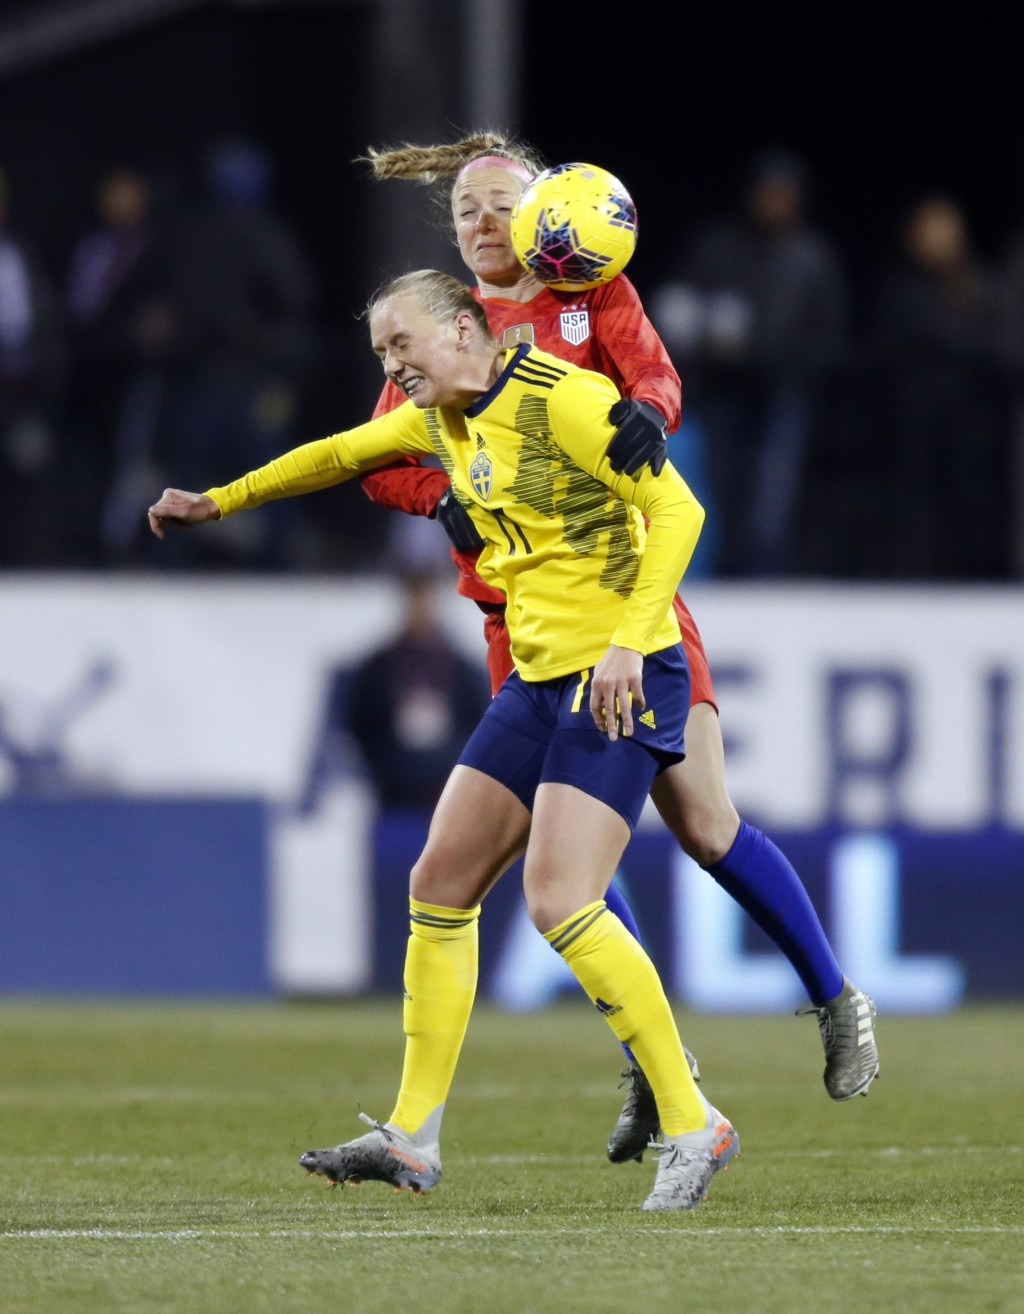 Sweden forward Stina Blackstenius, left, heads the ball in front of United States defender Becky Sauerbrunn during the first half of a women's interna...